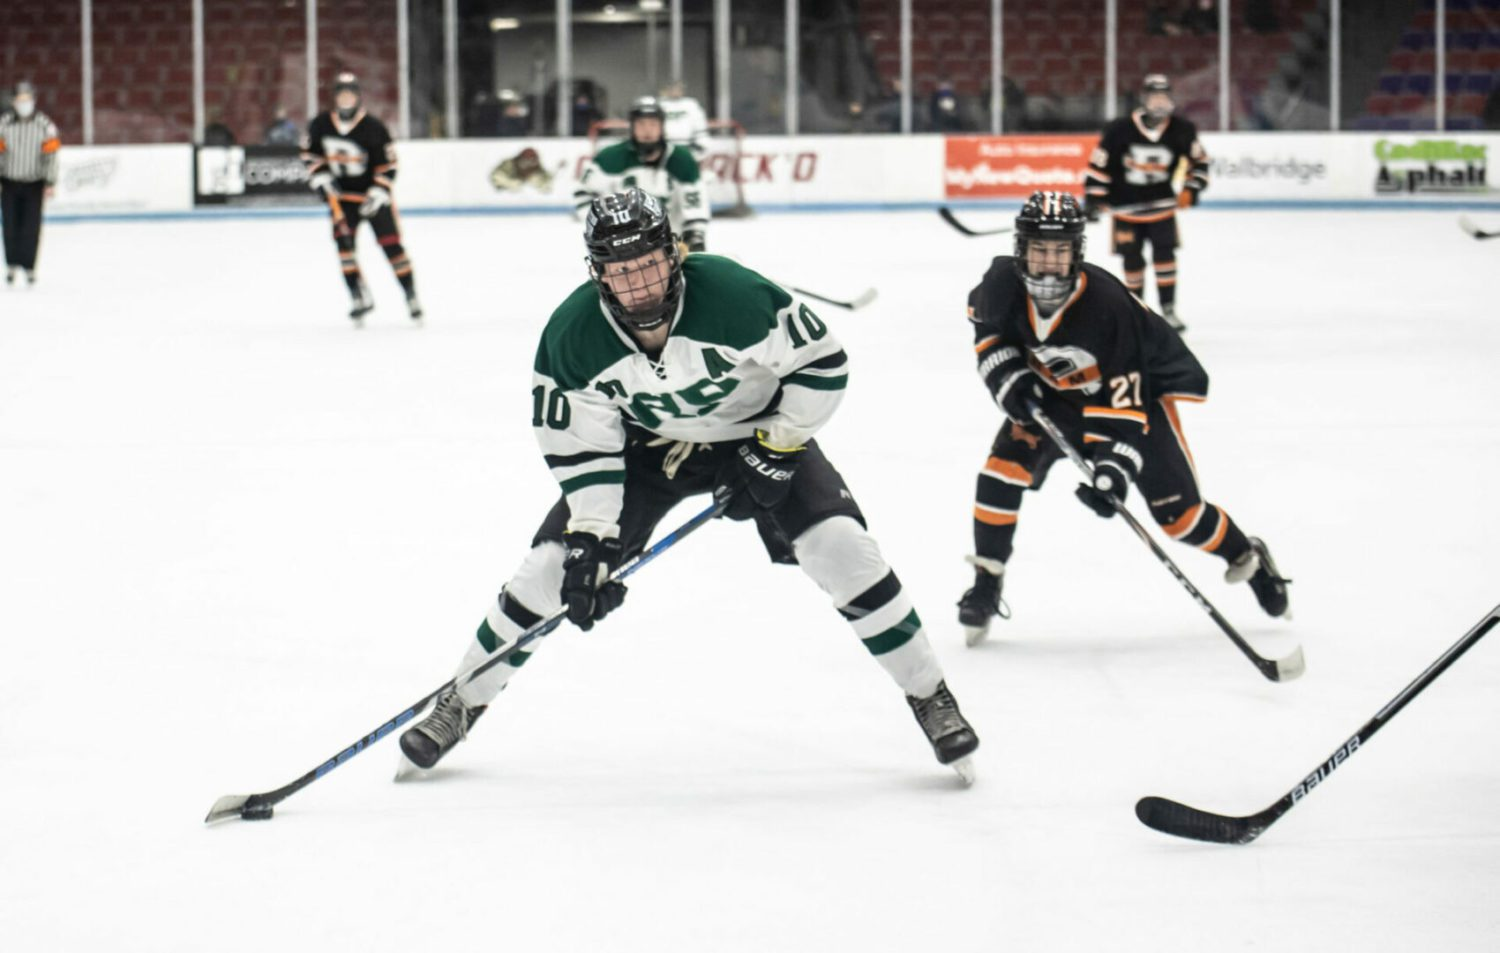 Reeths-Puffer hockey team opens its season on a rough note, falling 8-2 to Rockford at home